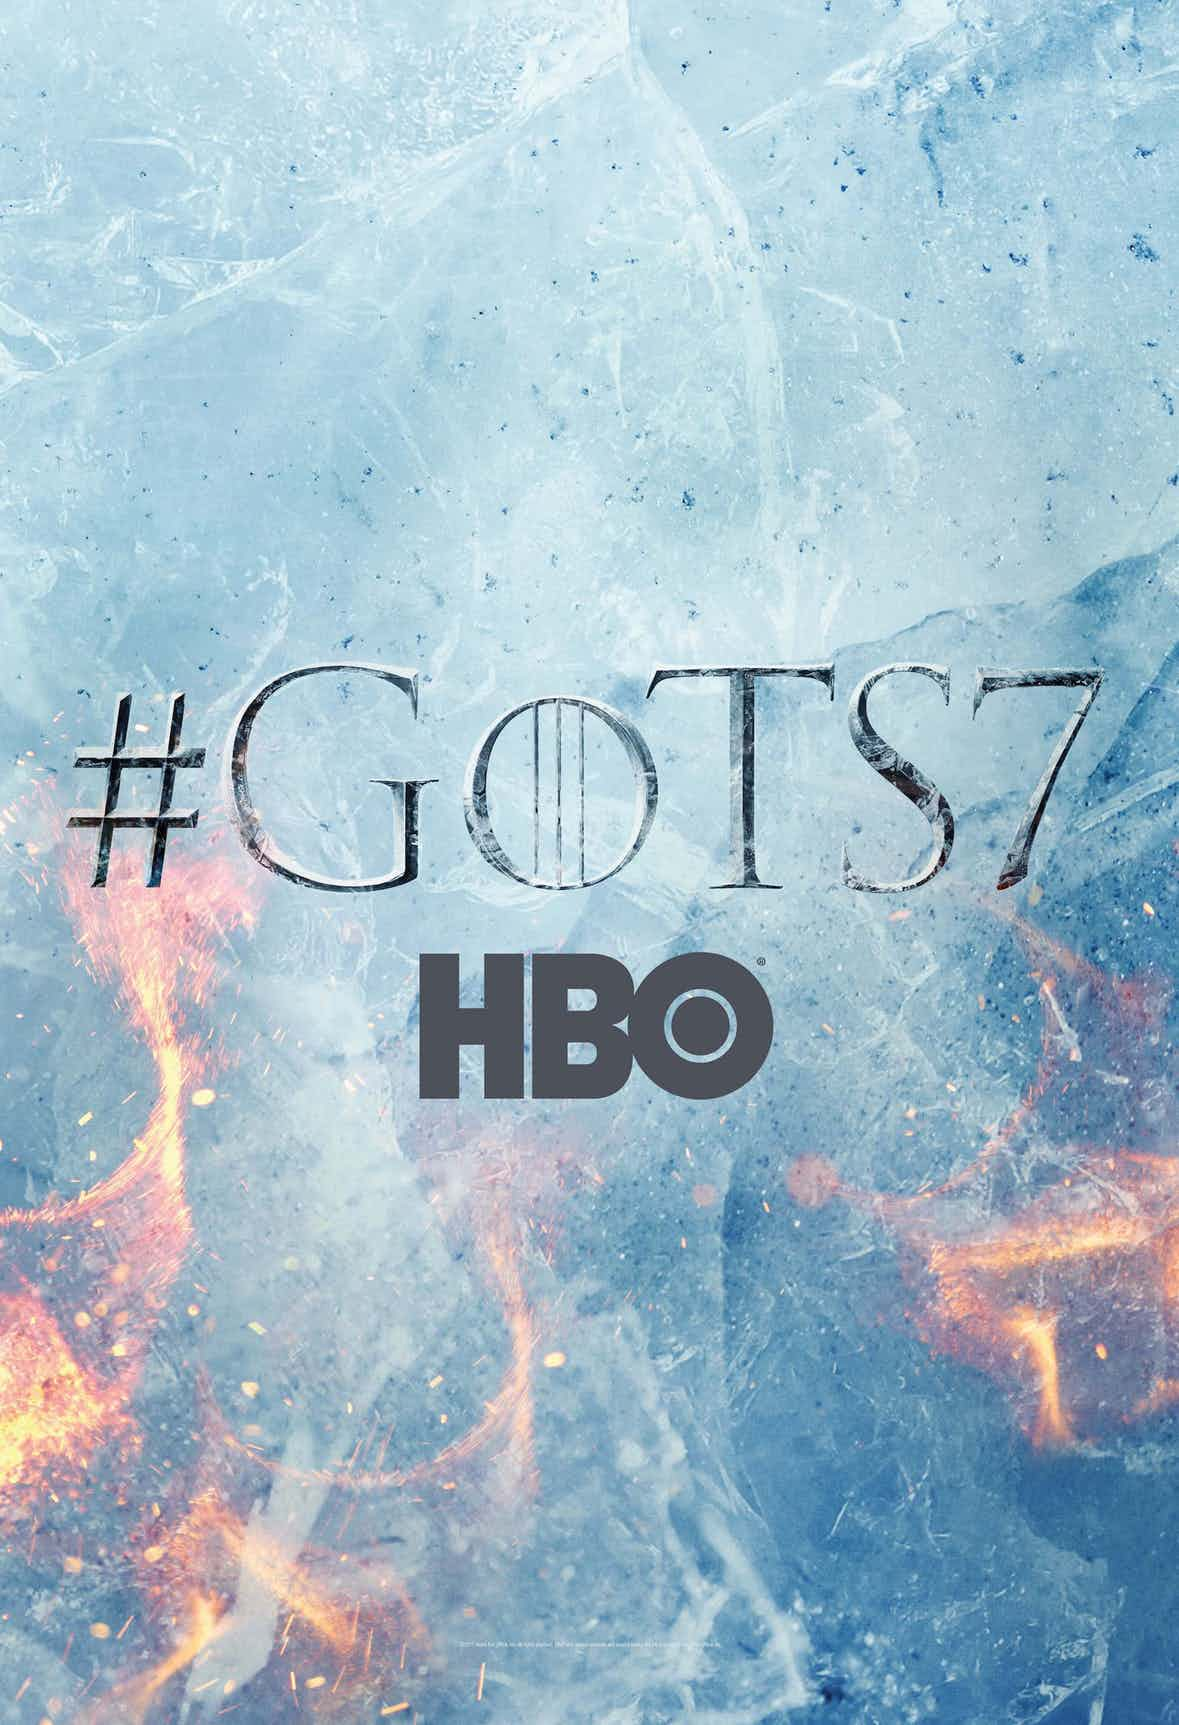 Game Of Thrones Season 7 Poster Is Kissed By Fire (And Ice!)